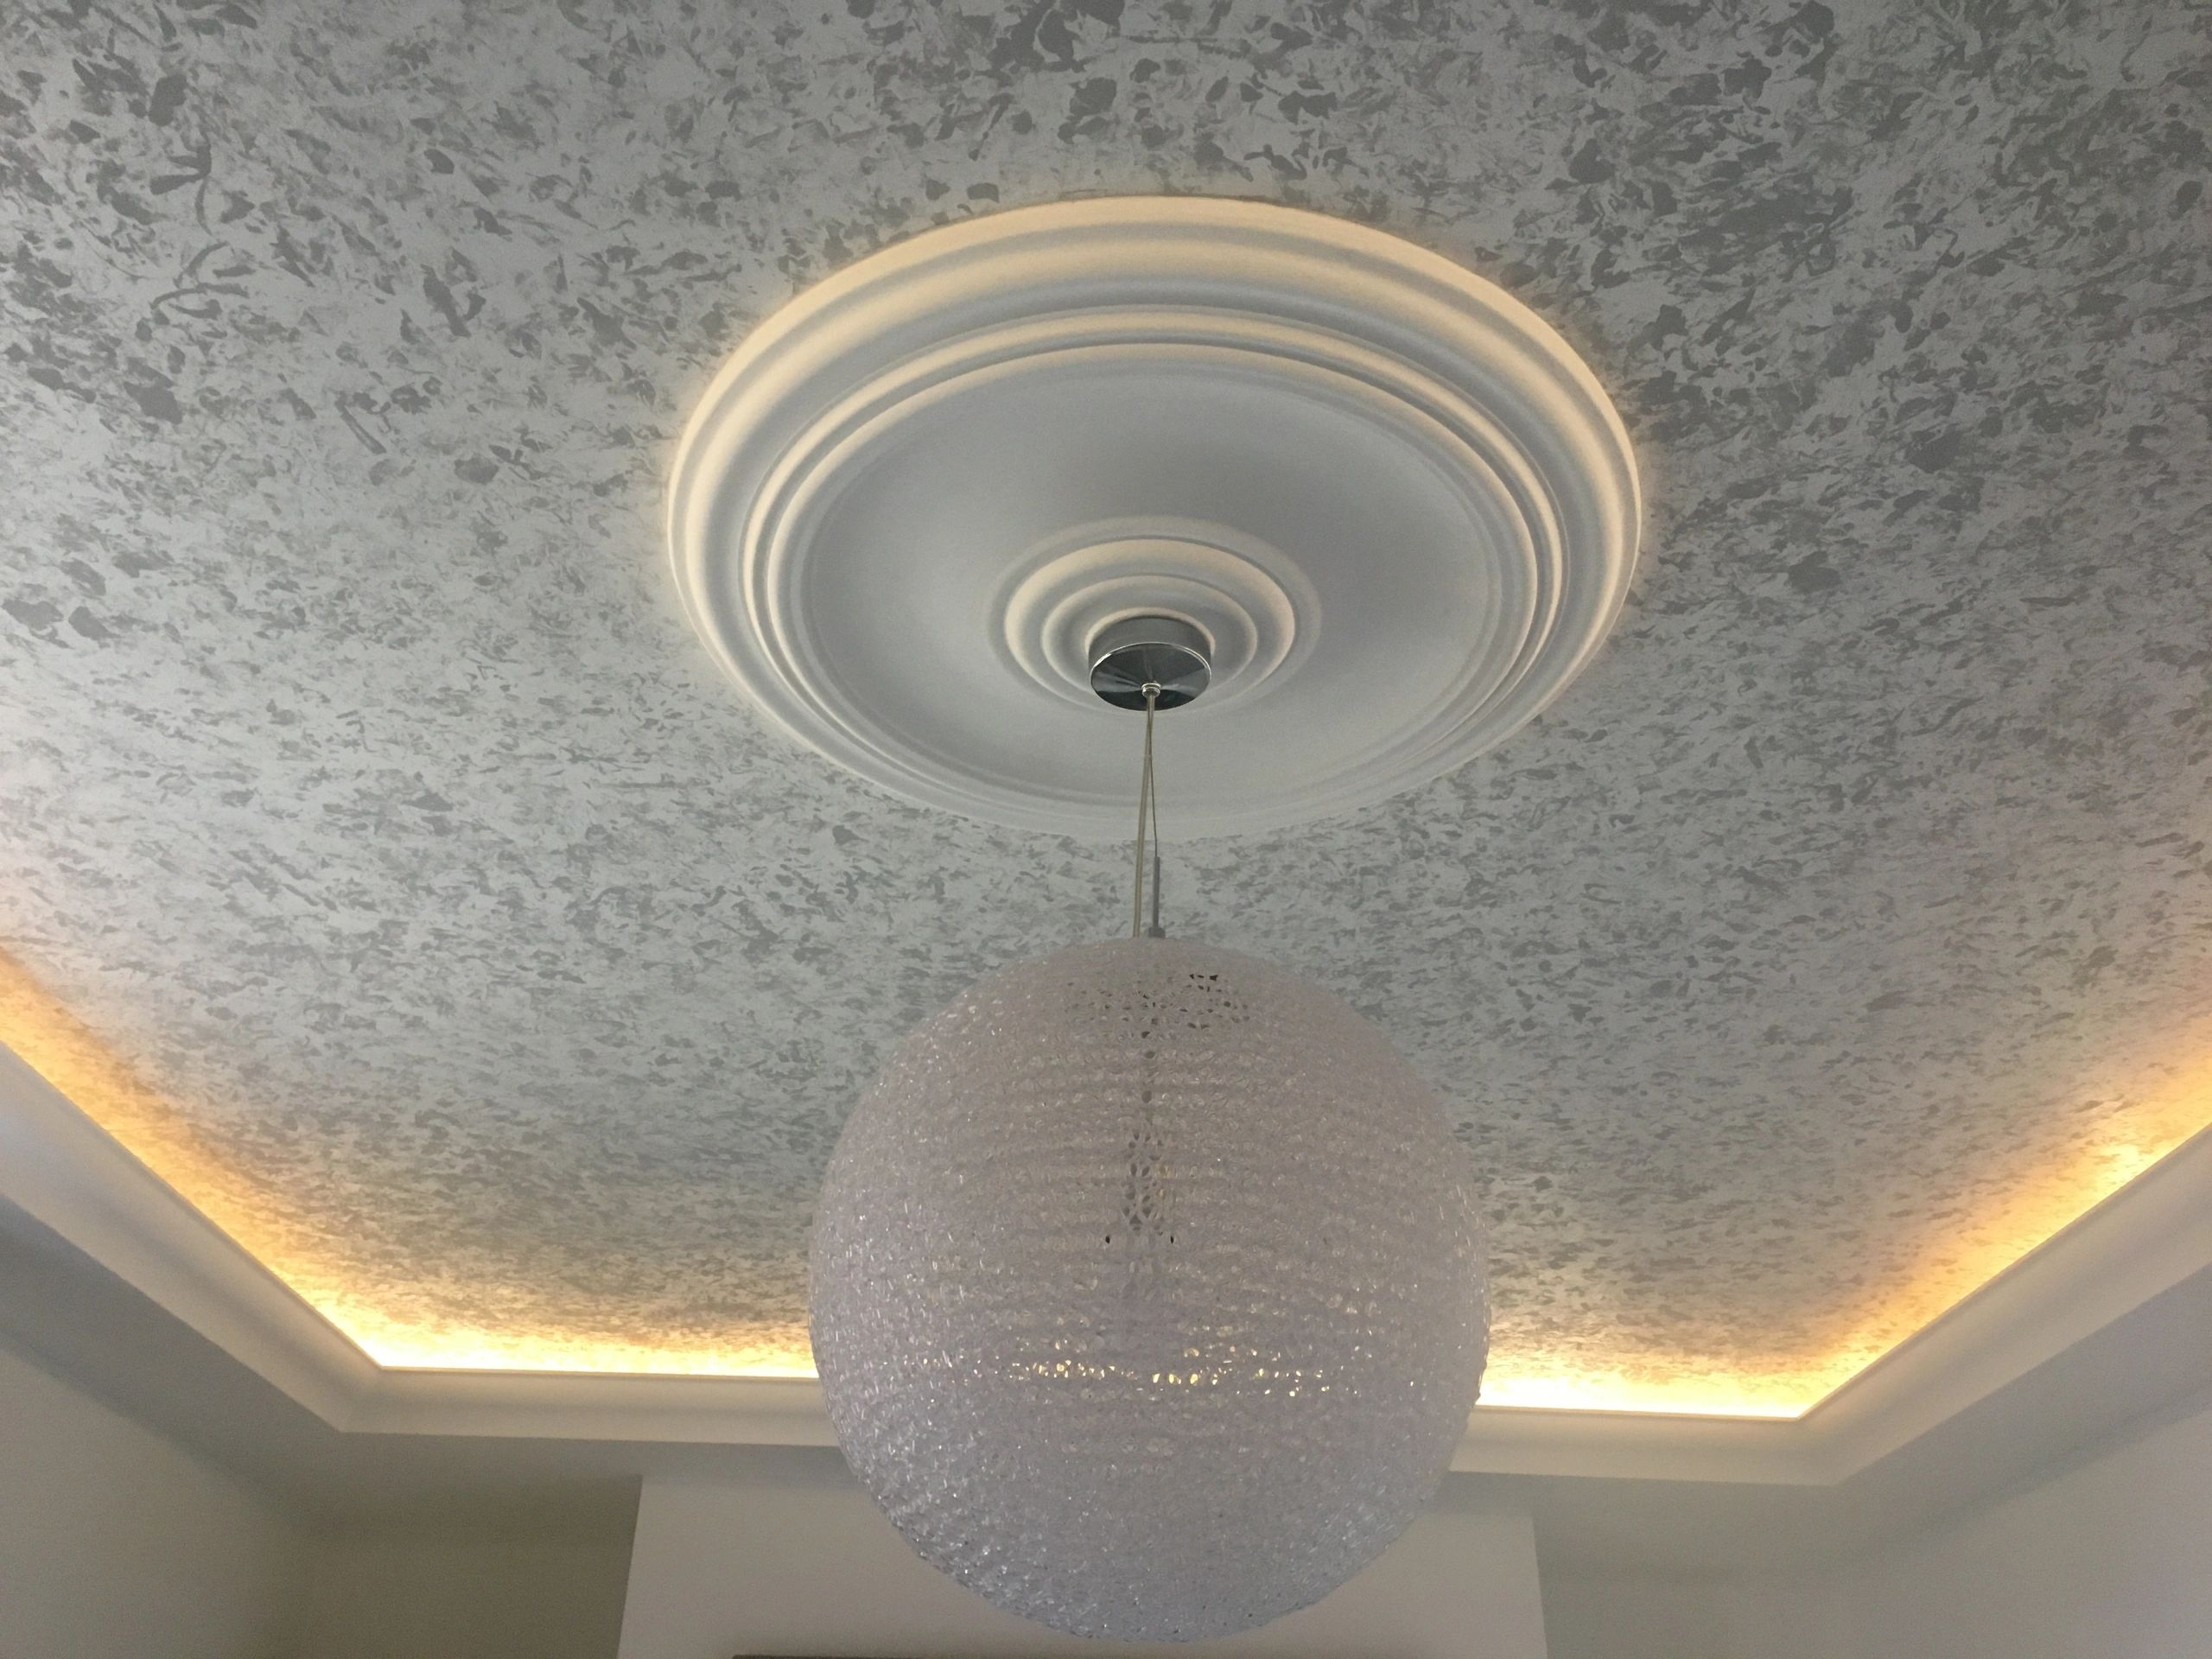 CORNICE COVING UPLIGHTING PAINTED CEILING MARBEL CEILING CENTRE LIGHT